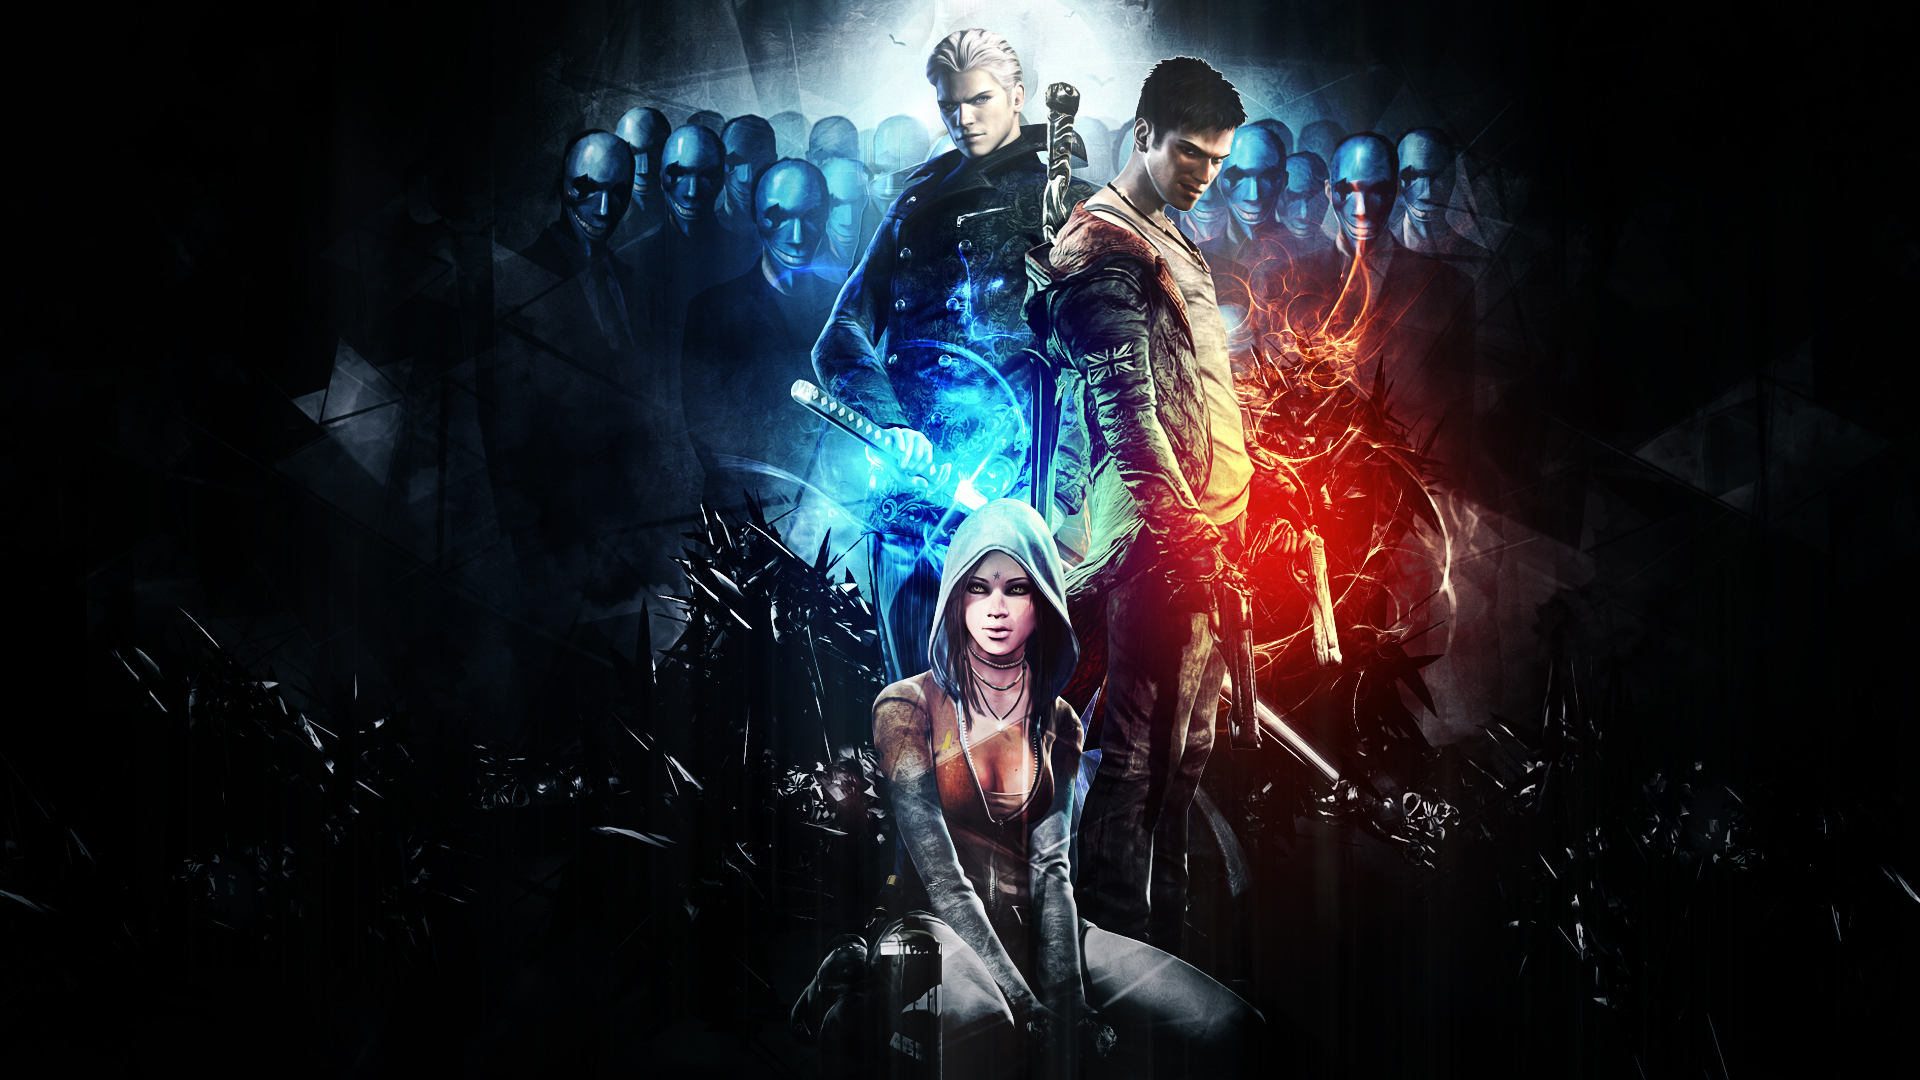 Dmc Devil May Cry Hd Wallpaper Background Image